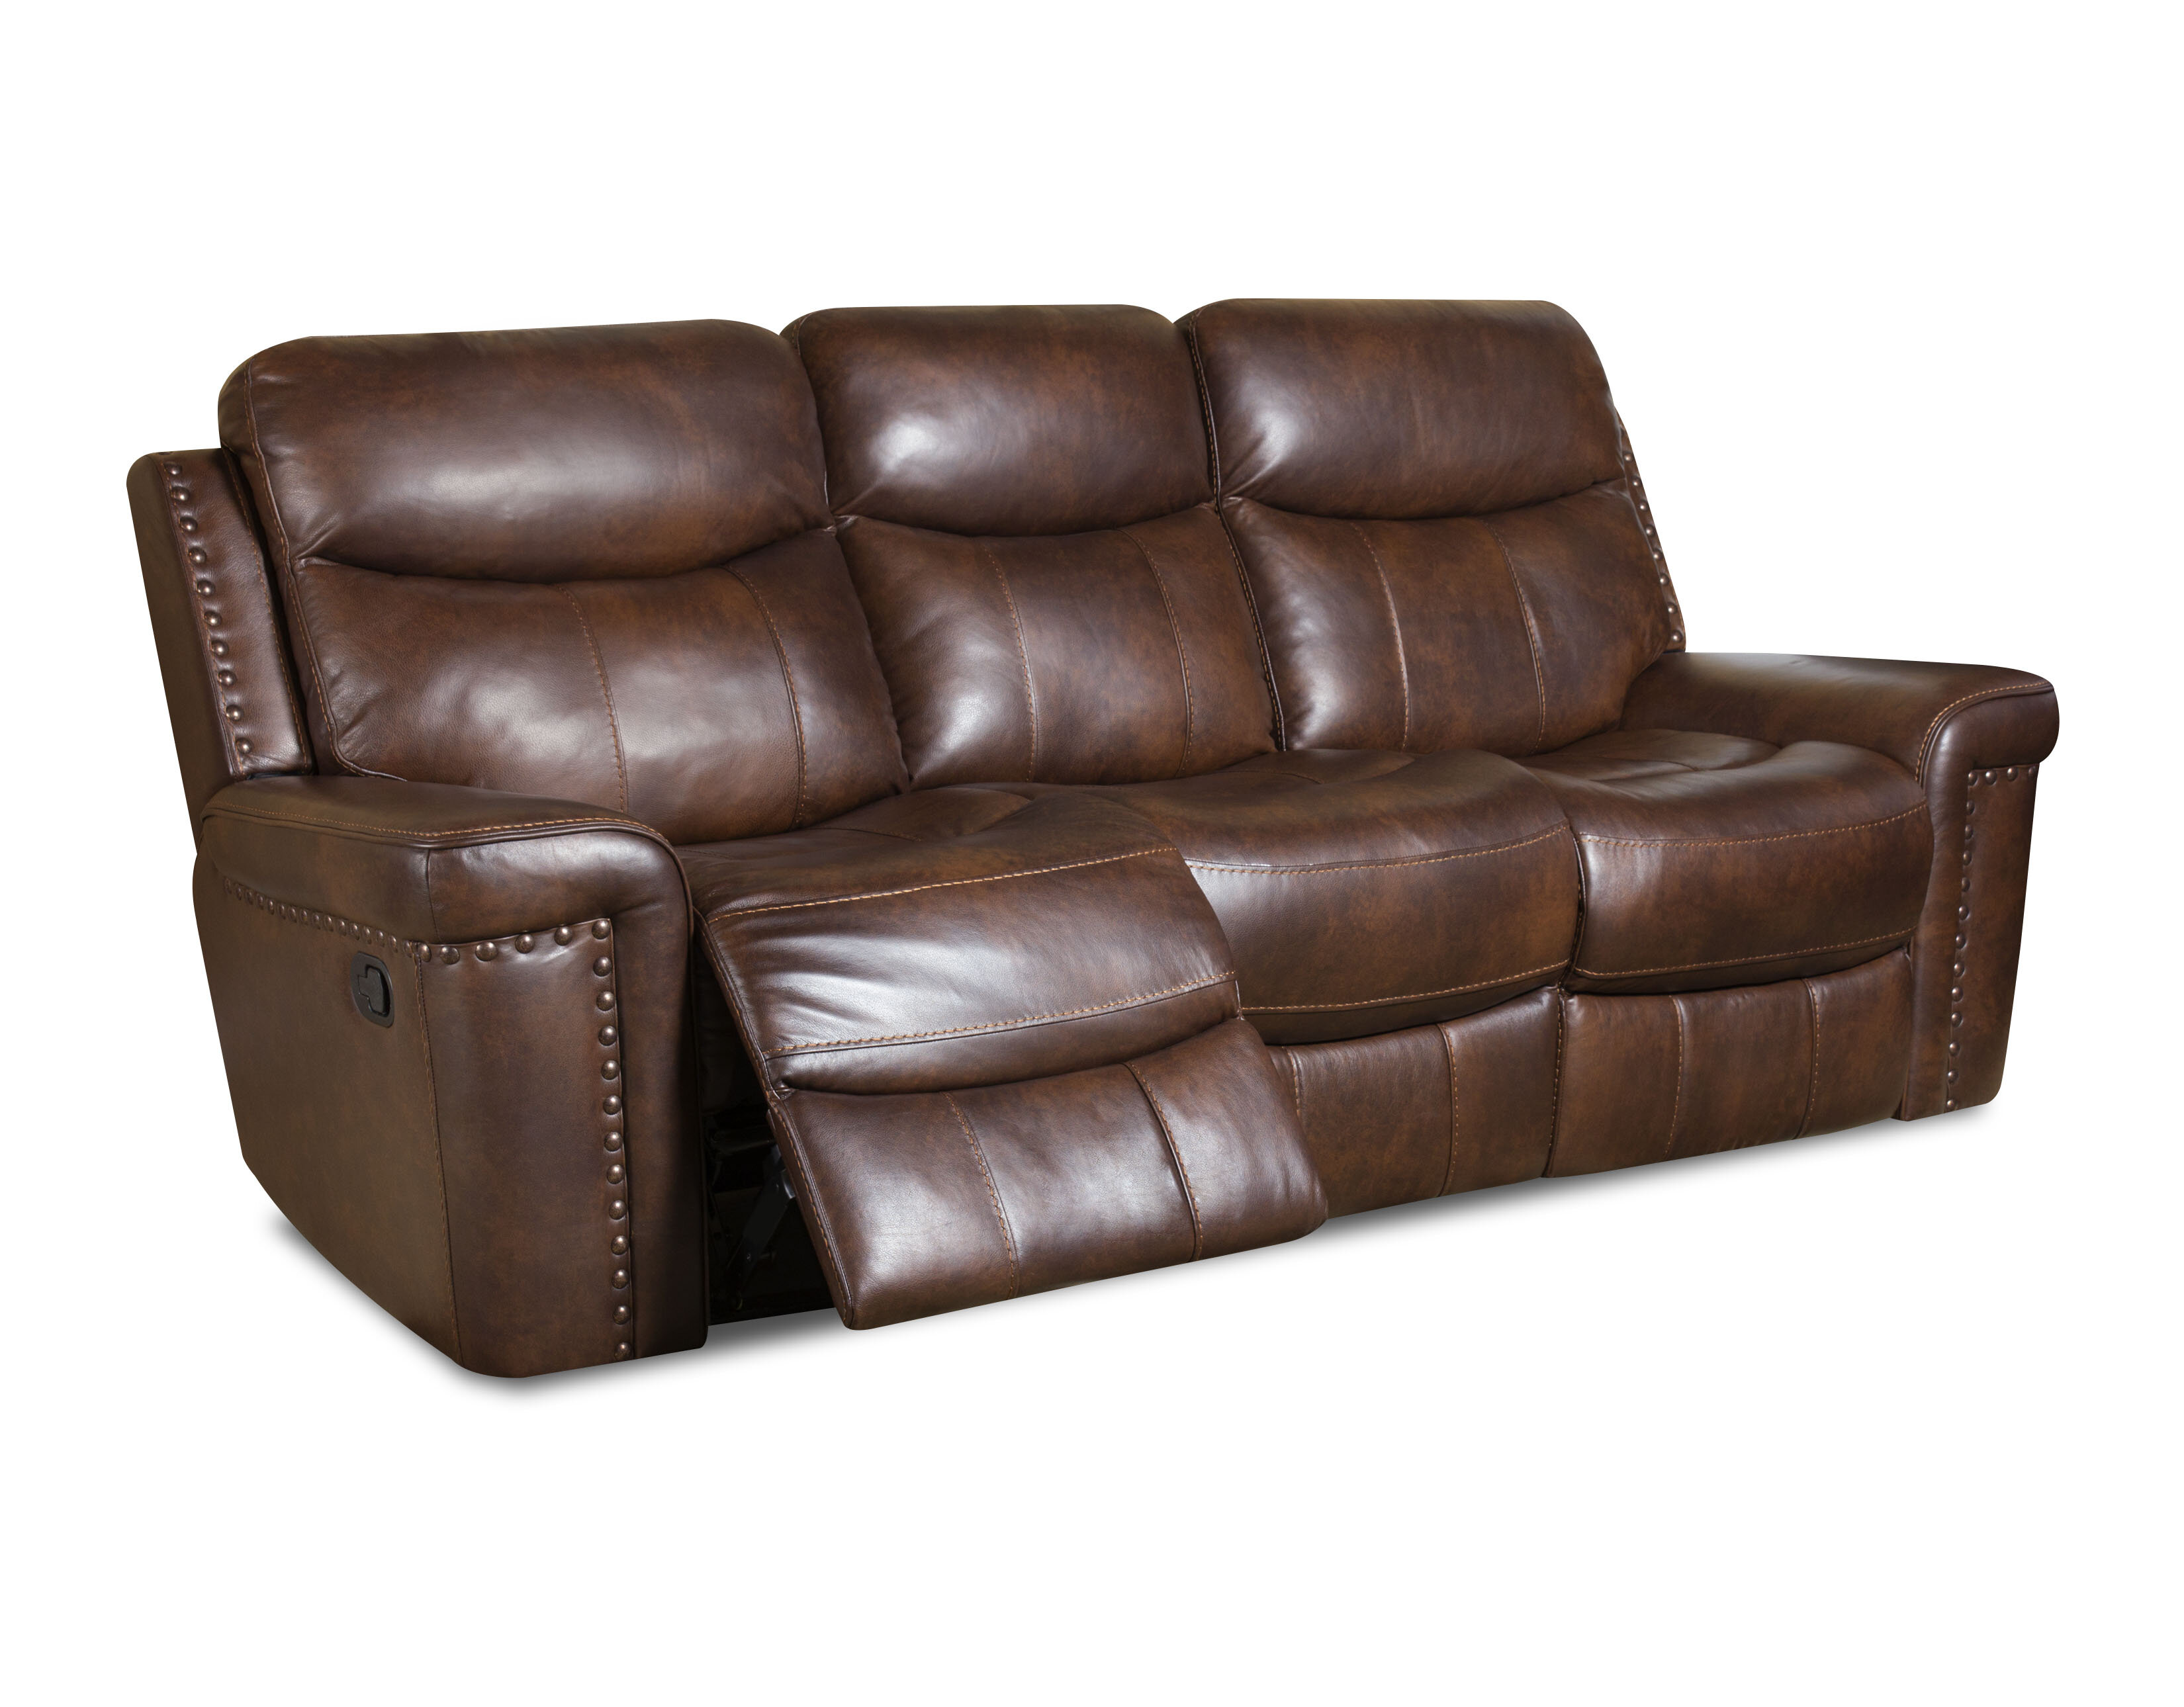 Alcott Hill Heineman Leather Reclining Sofa & Reviews | Wayfair